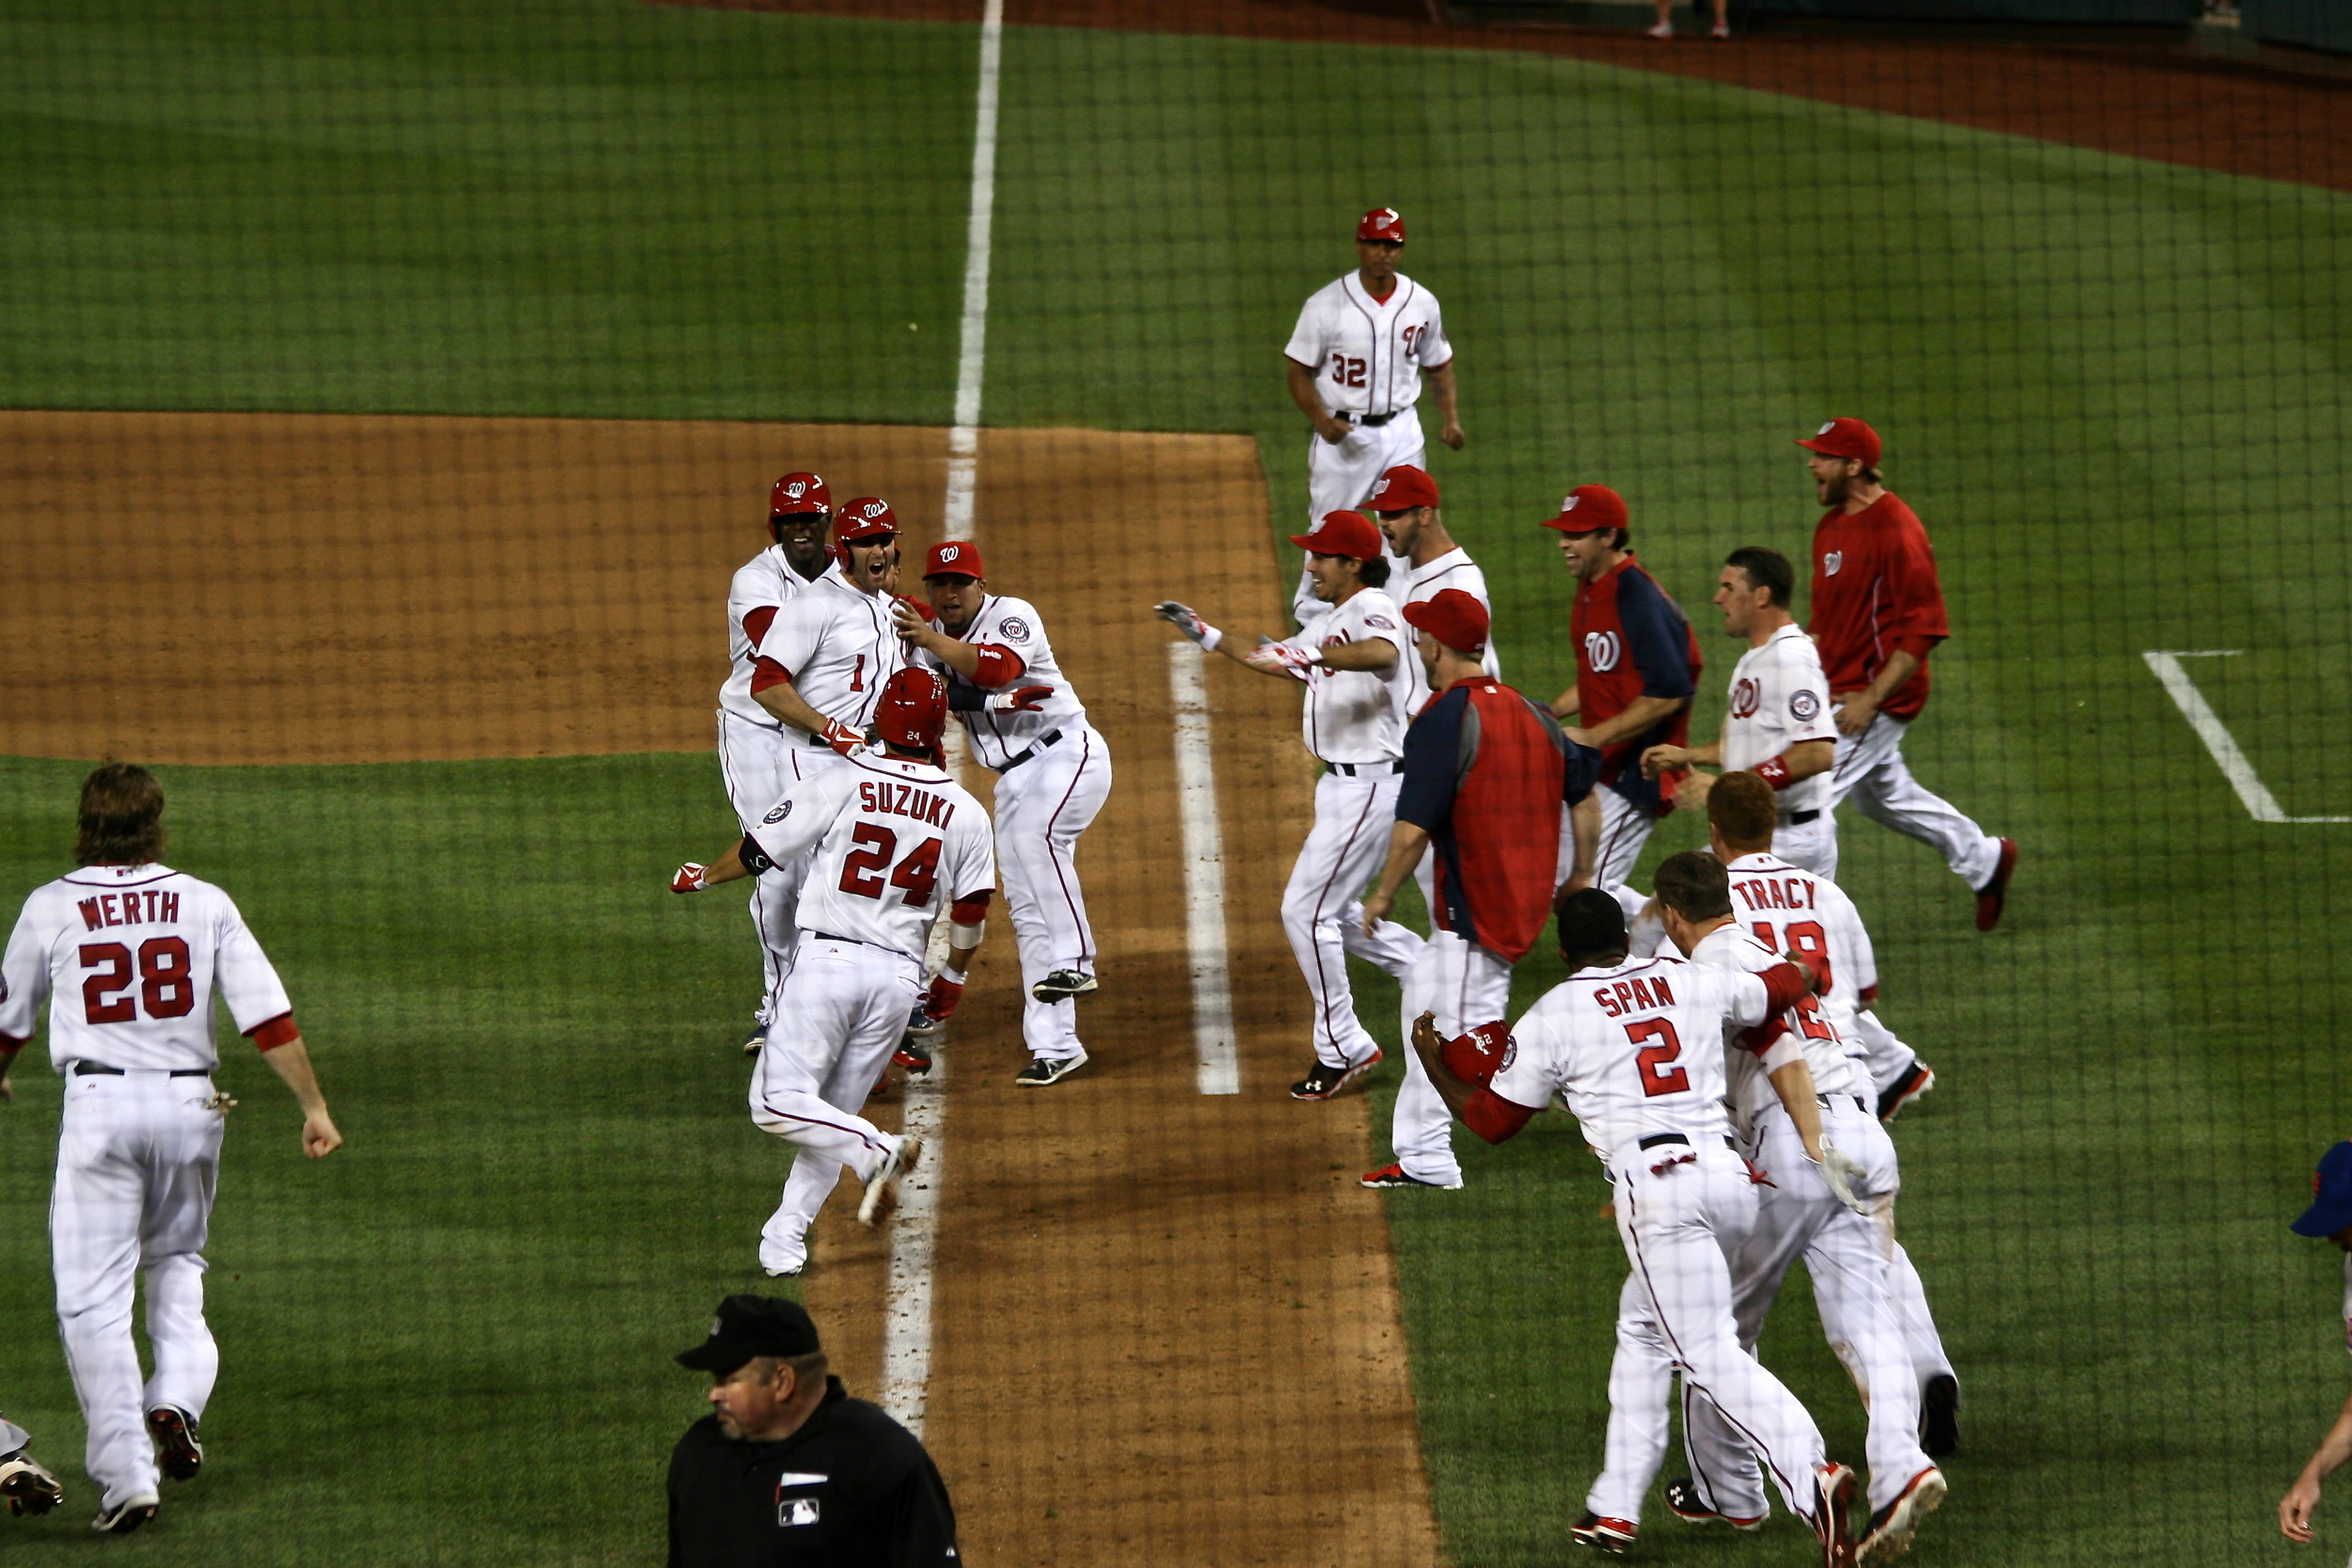 Lombardozzi gets mobbed after his game winning sac fly